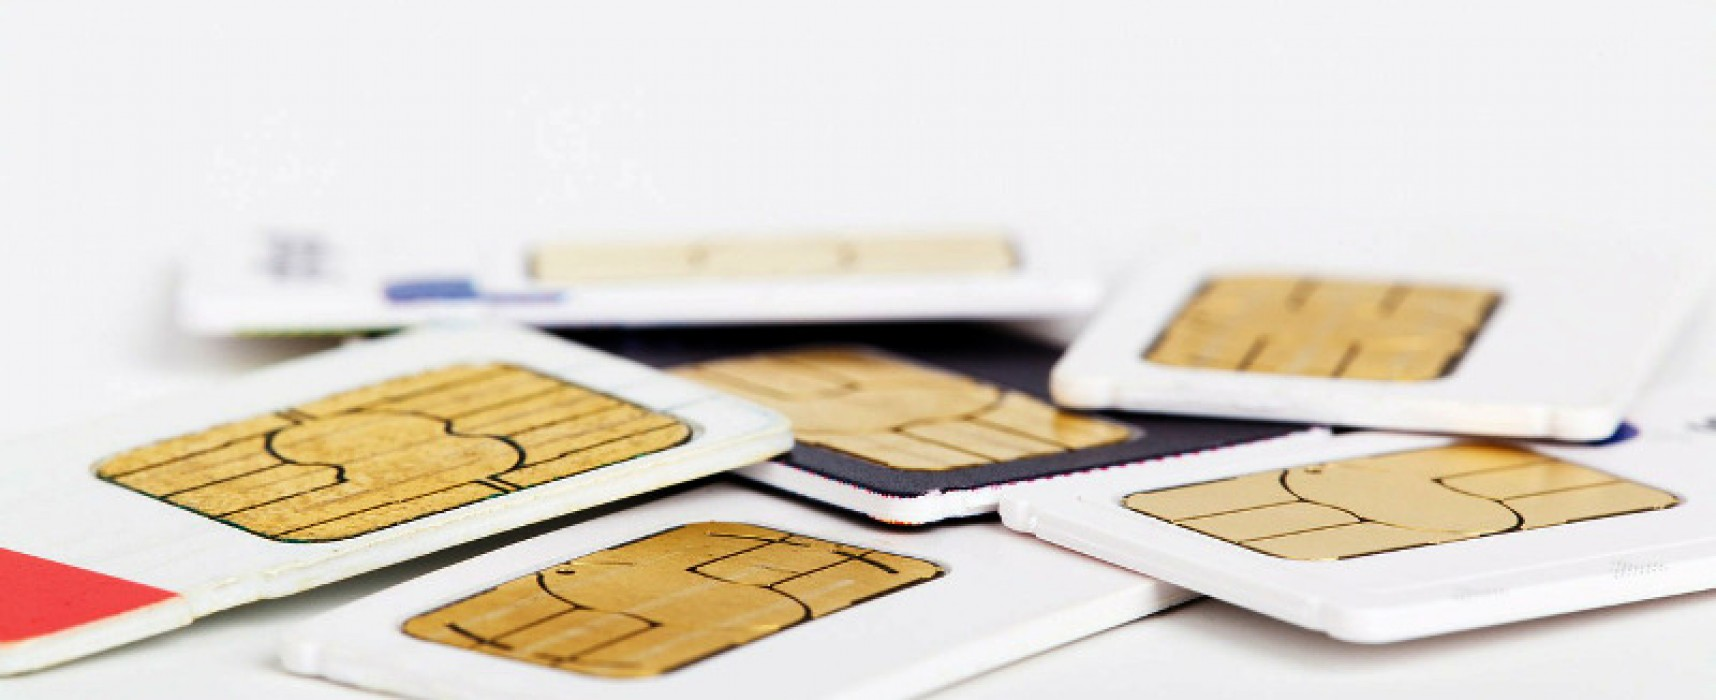 Russia Considers Tougher Restrictions on Mobile SIM-Card Sales